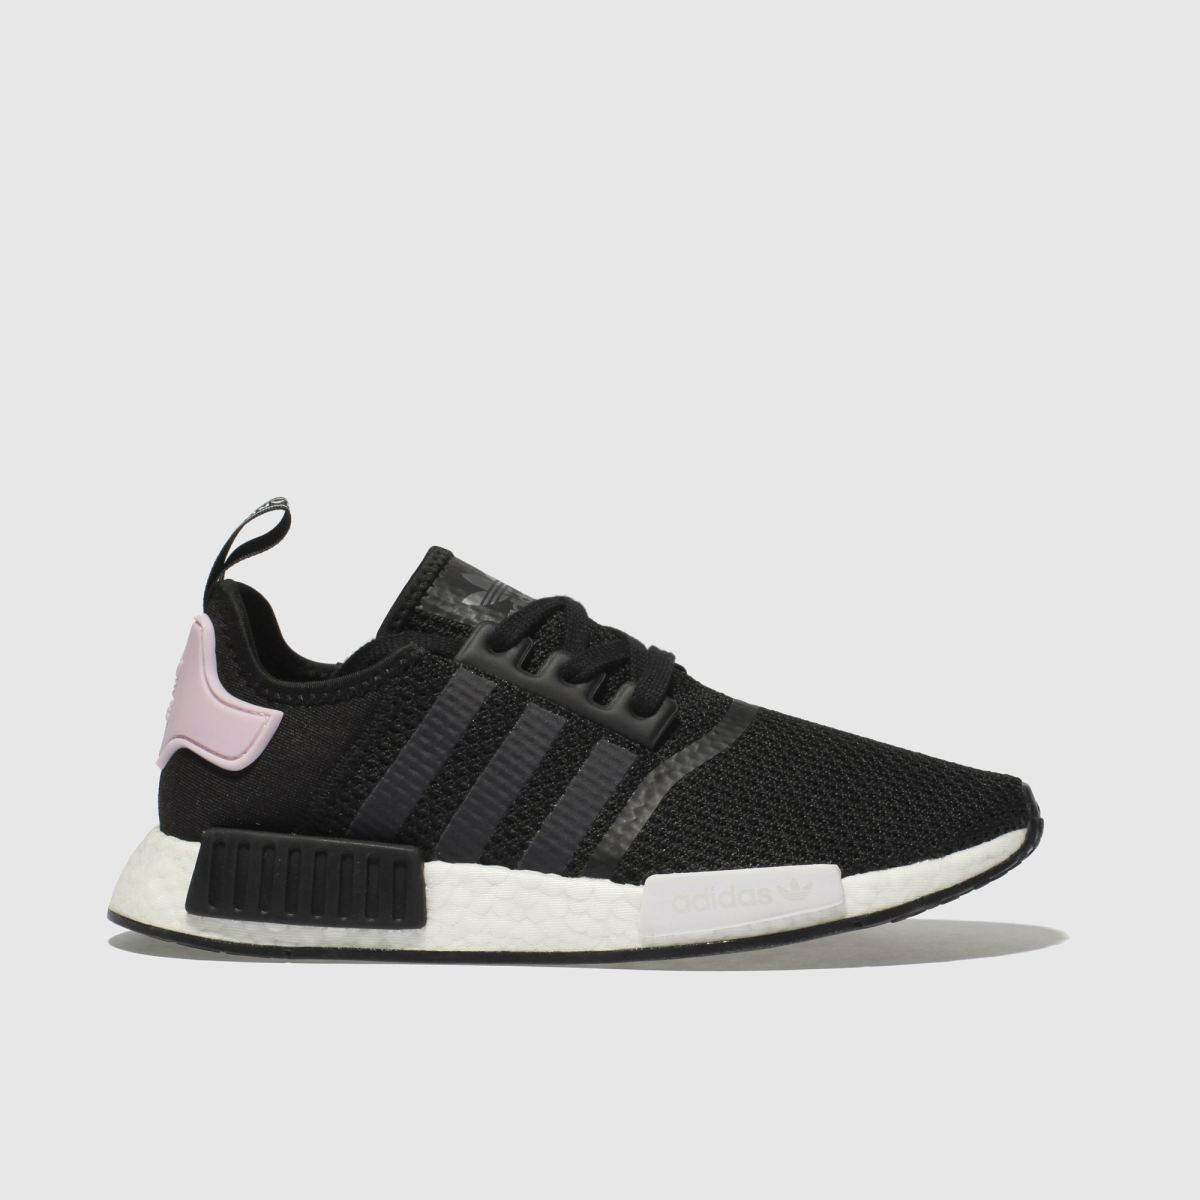 Adidas Black & Pink Nmd R1 Trainers